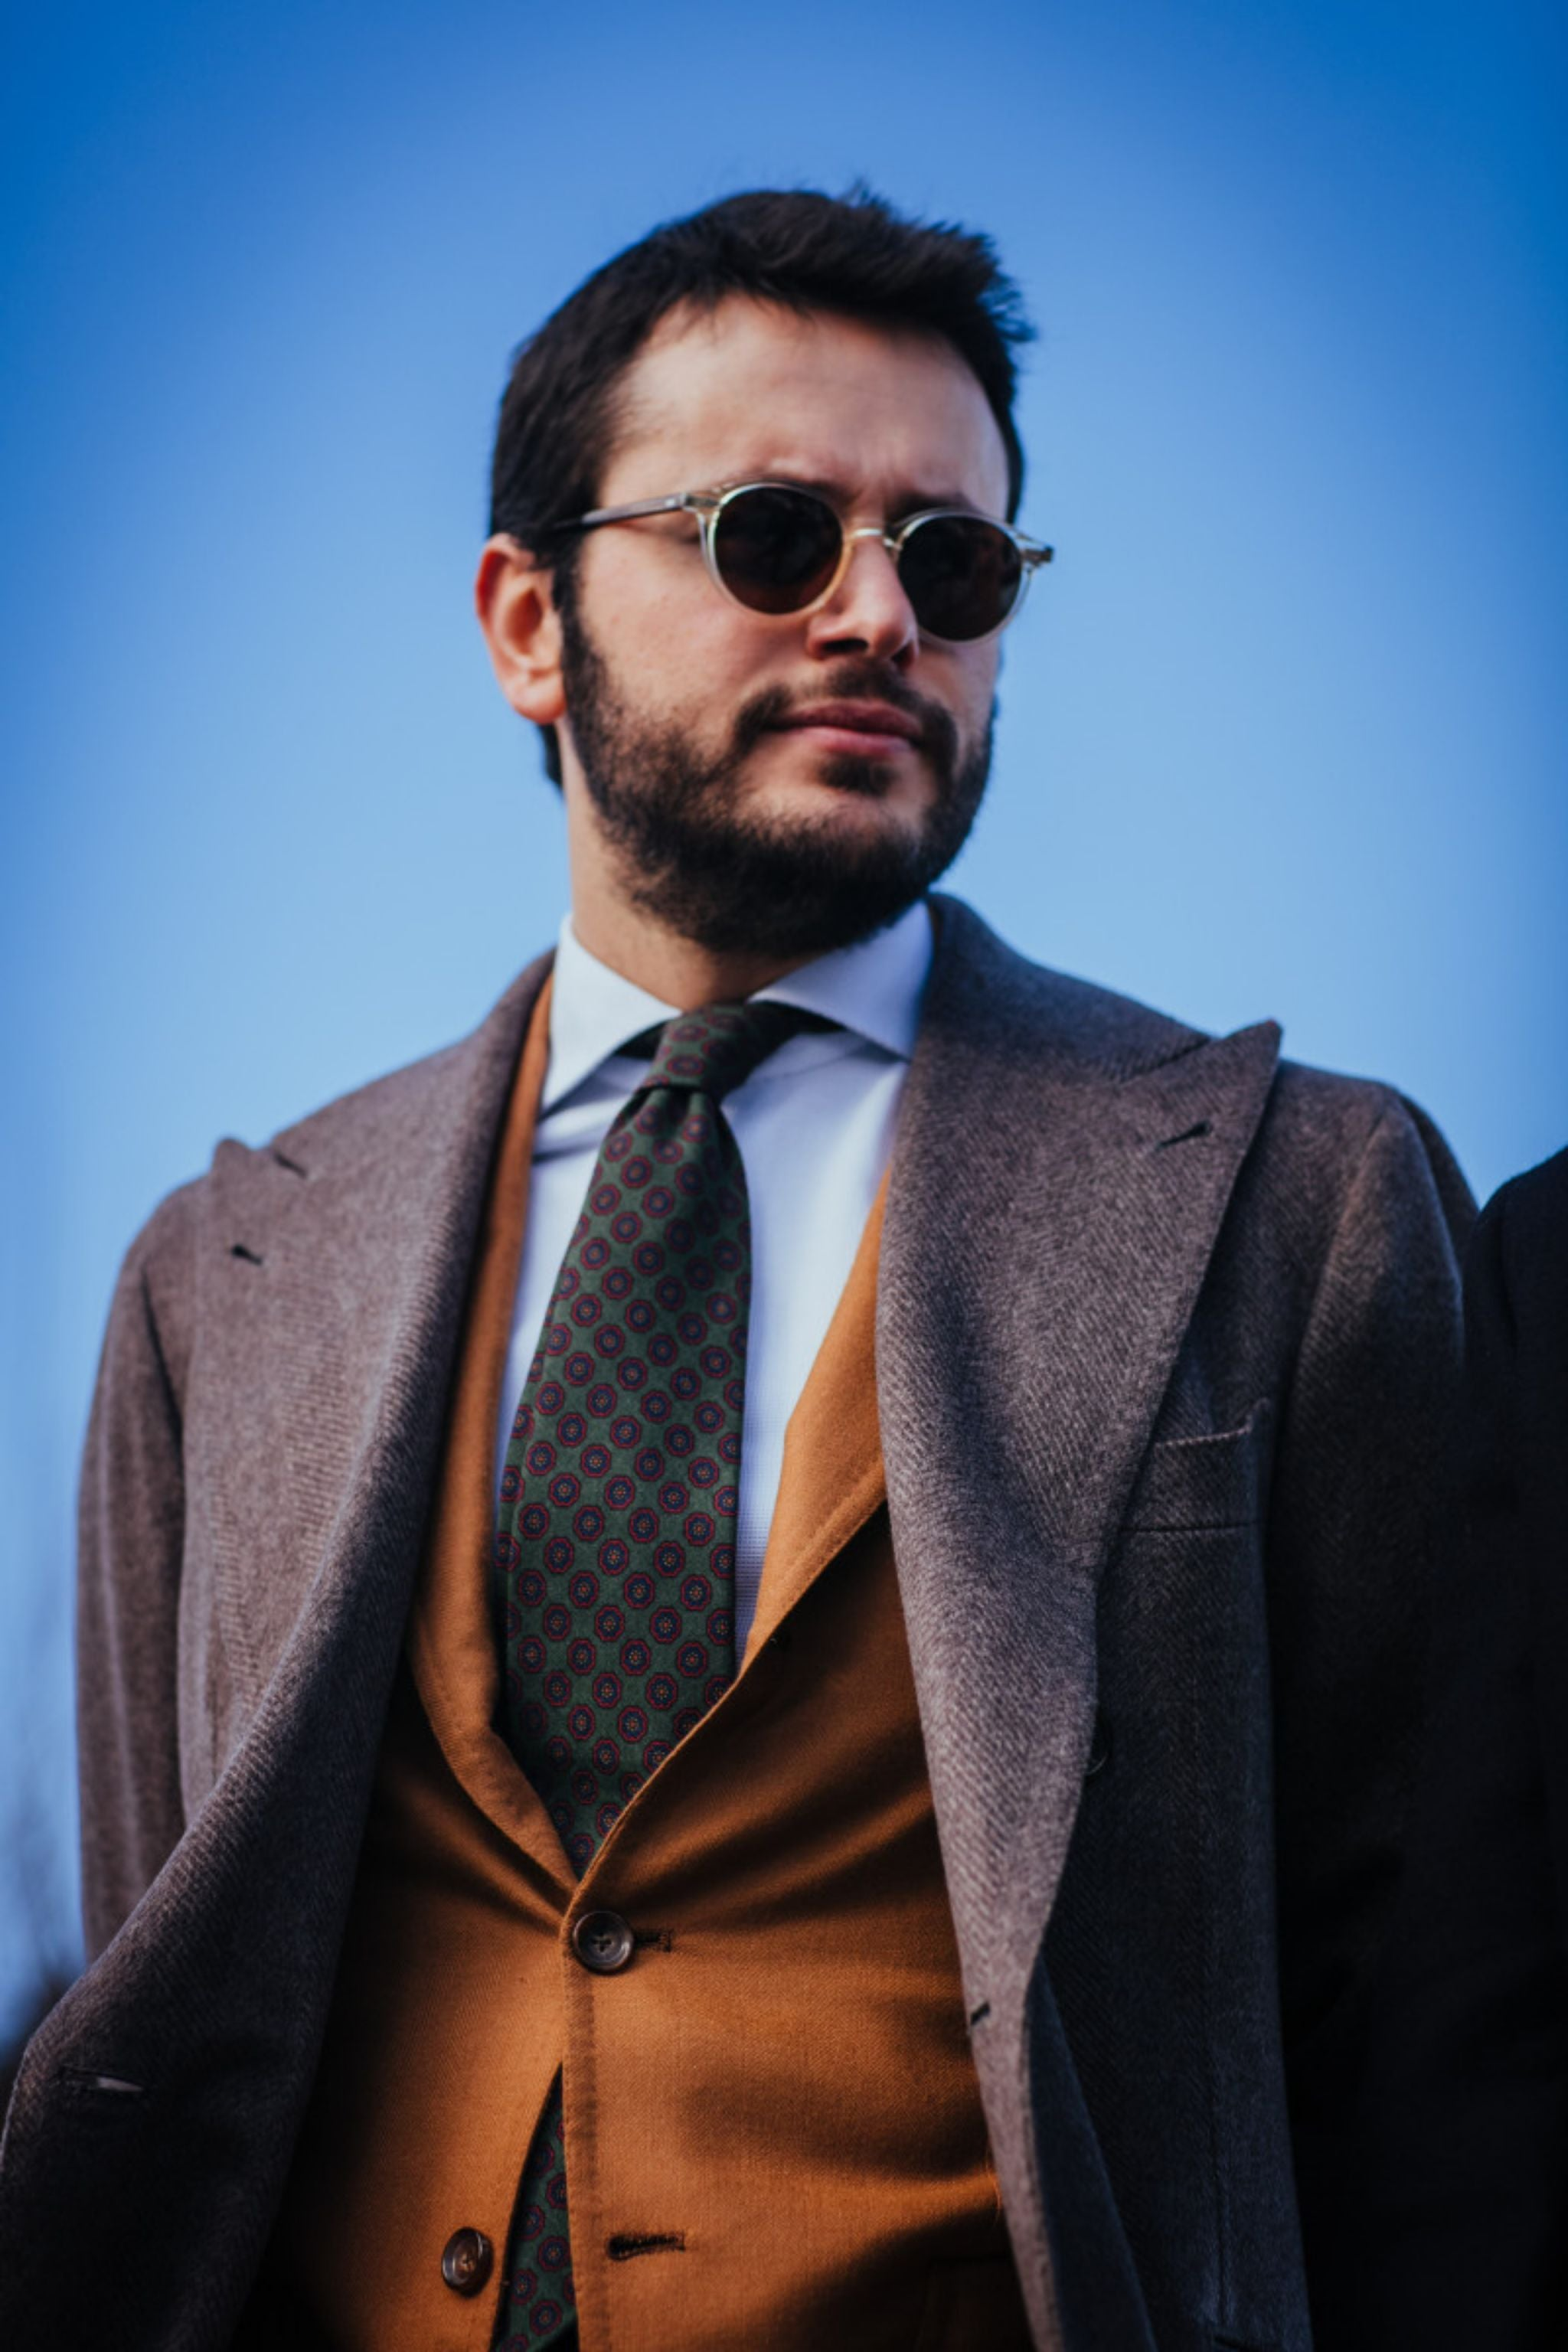 How to tie your tie - Pitti Uomo 89 - Fabio Attanasio